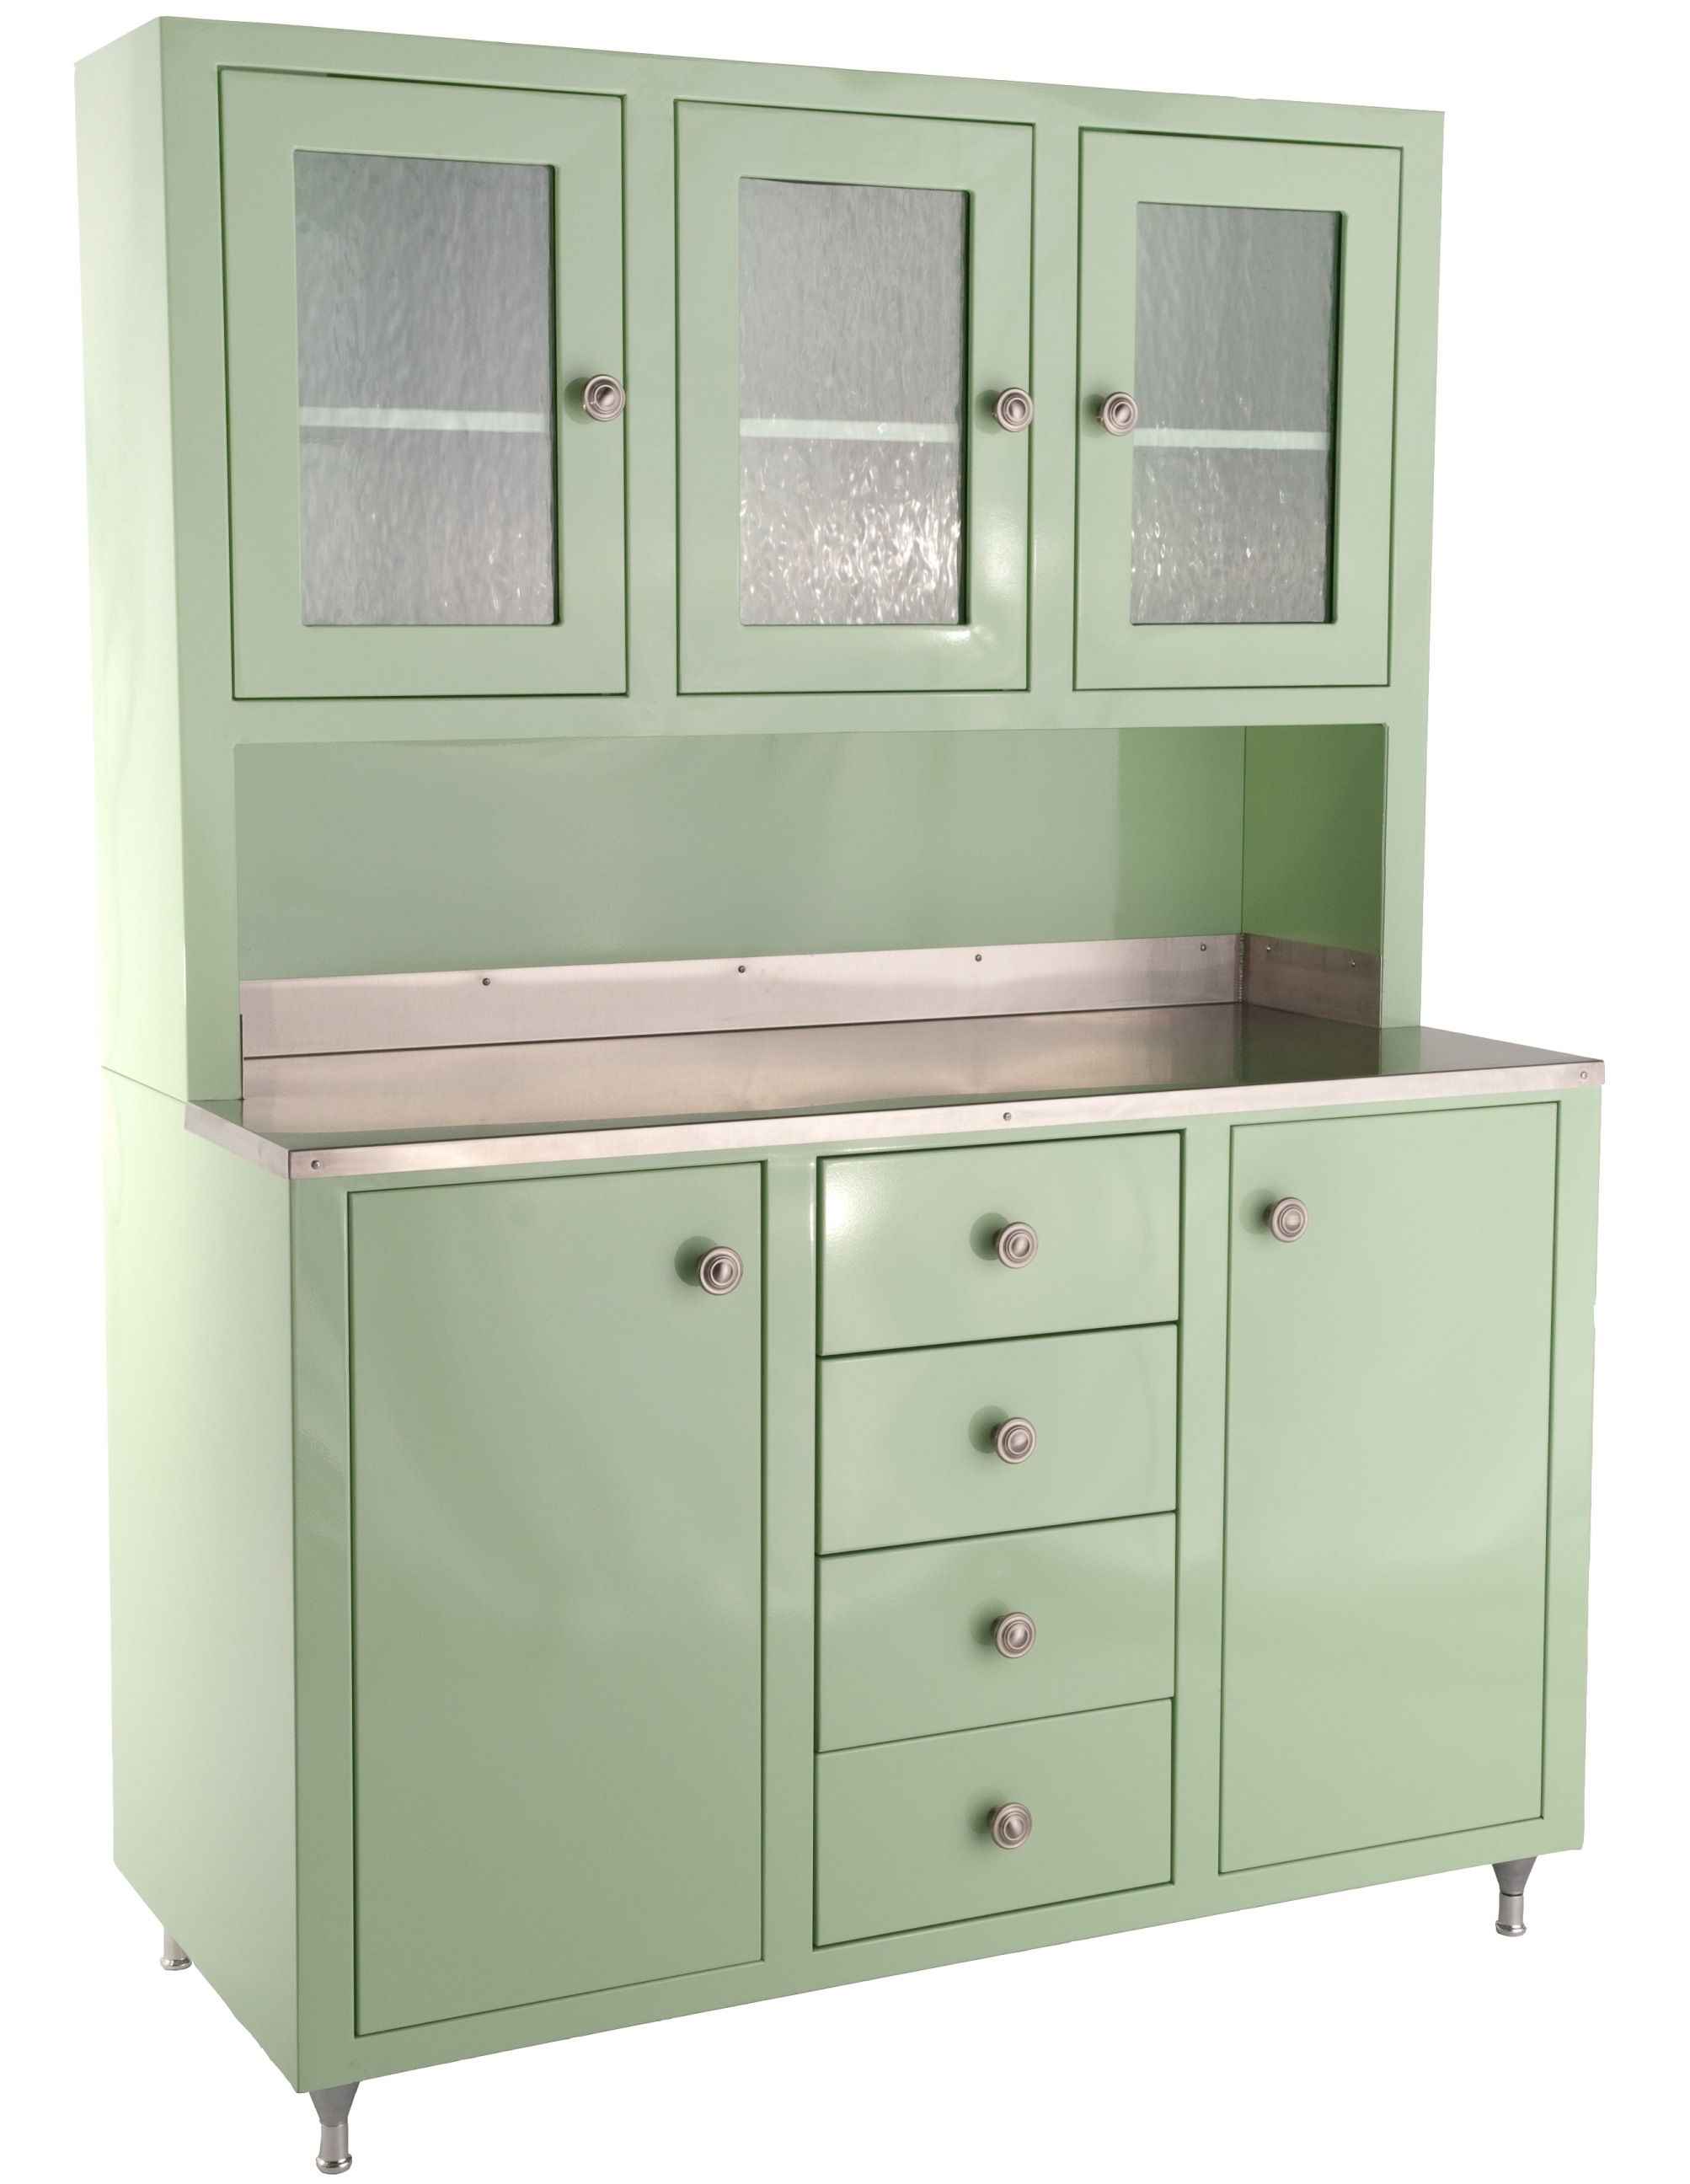 Permalink to Kitchen Furniture Storage Cabinets